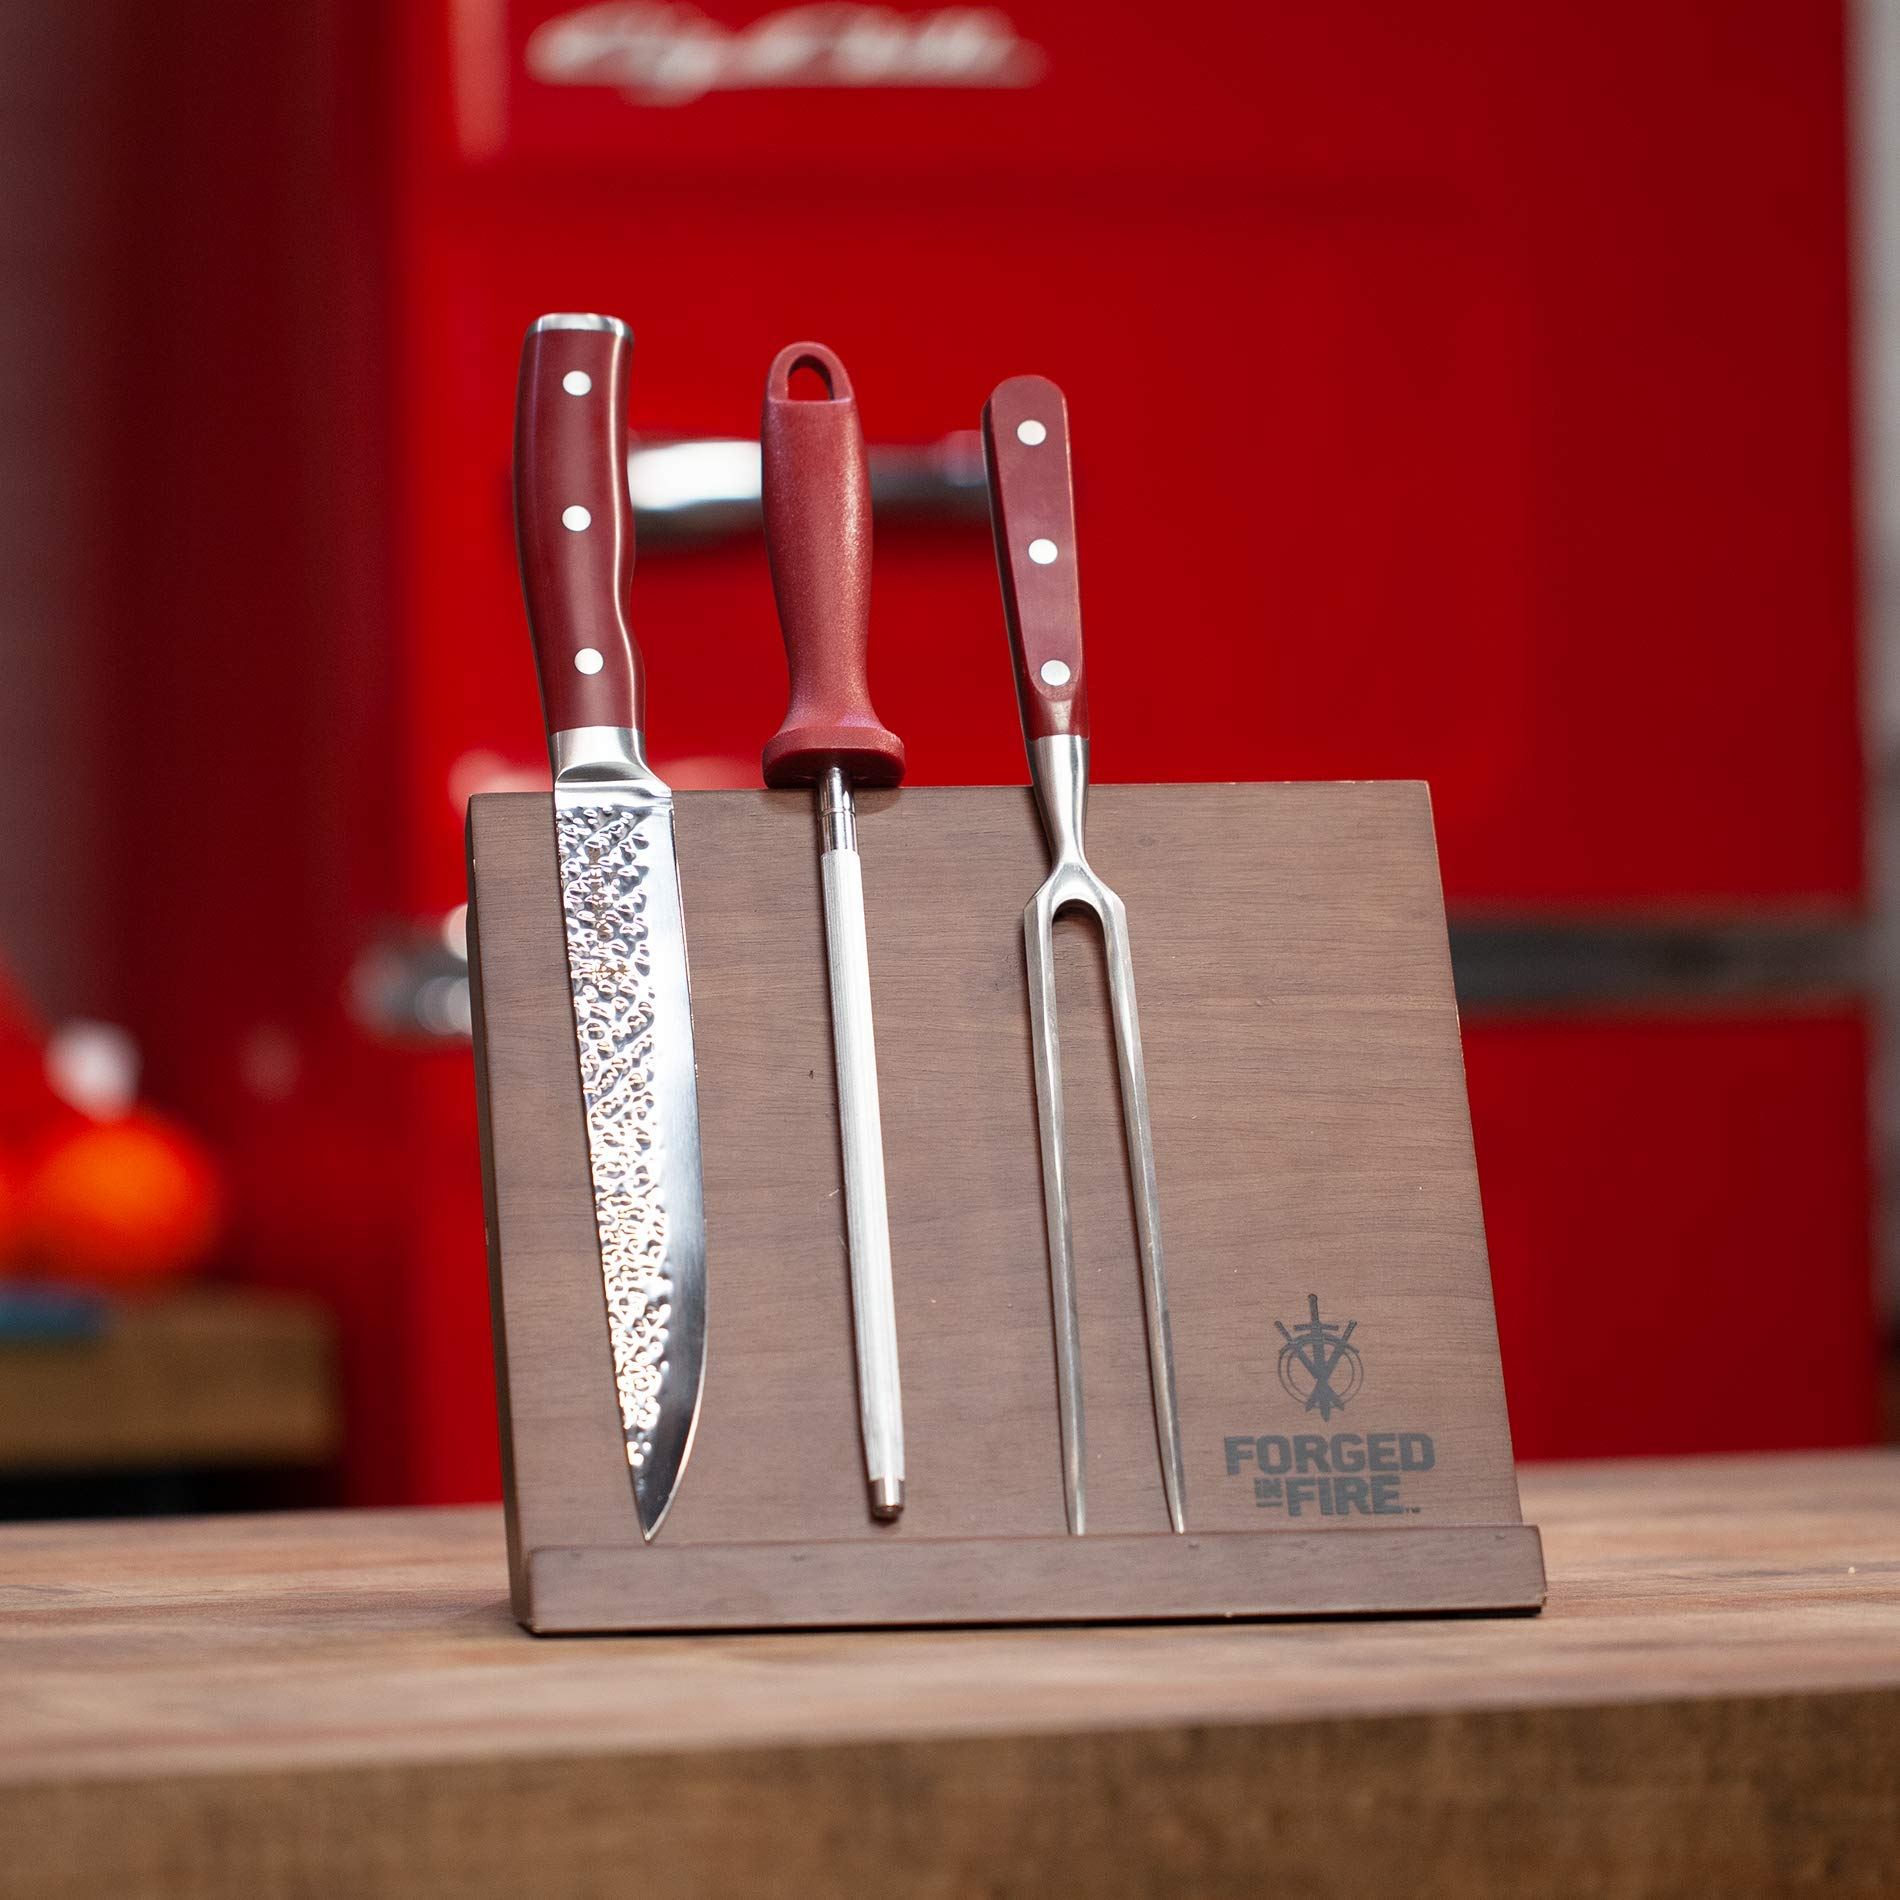 HISTORY - Forged in Fire - Magnetic Knife Block - Natural Wood, Space Saver by Forged in Fire (Image #5)